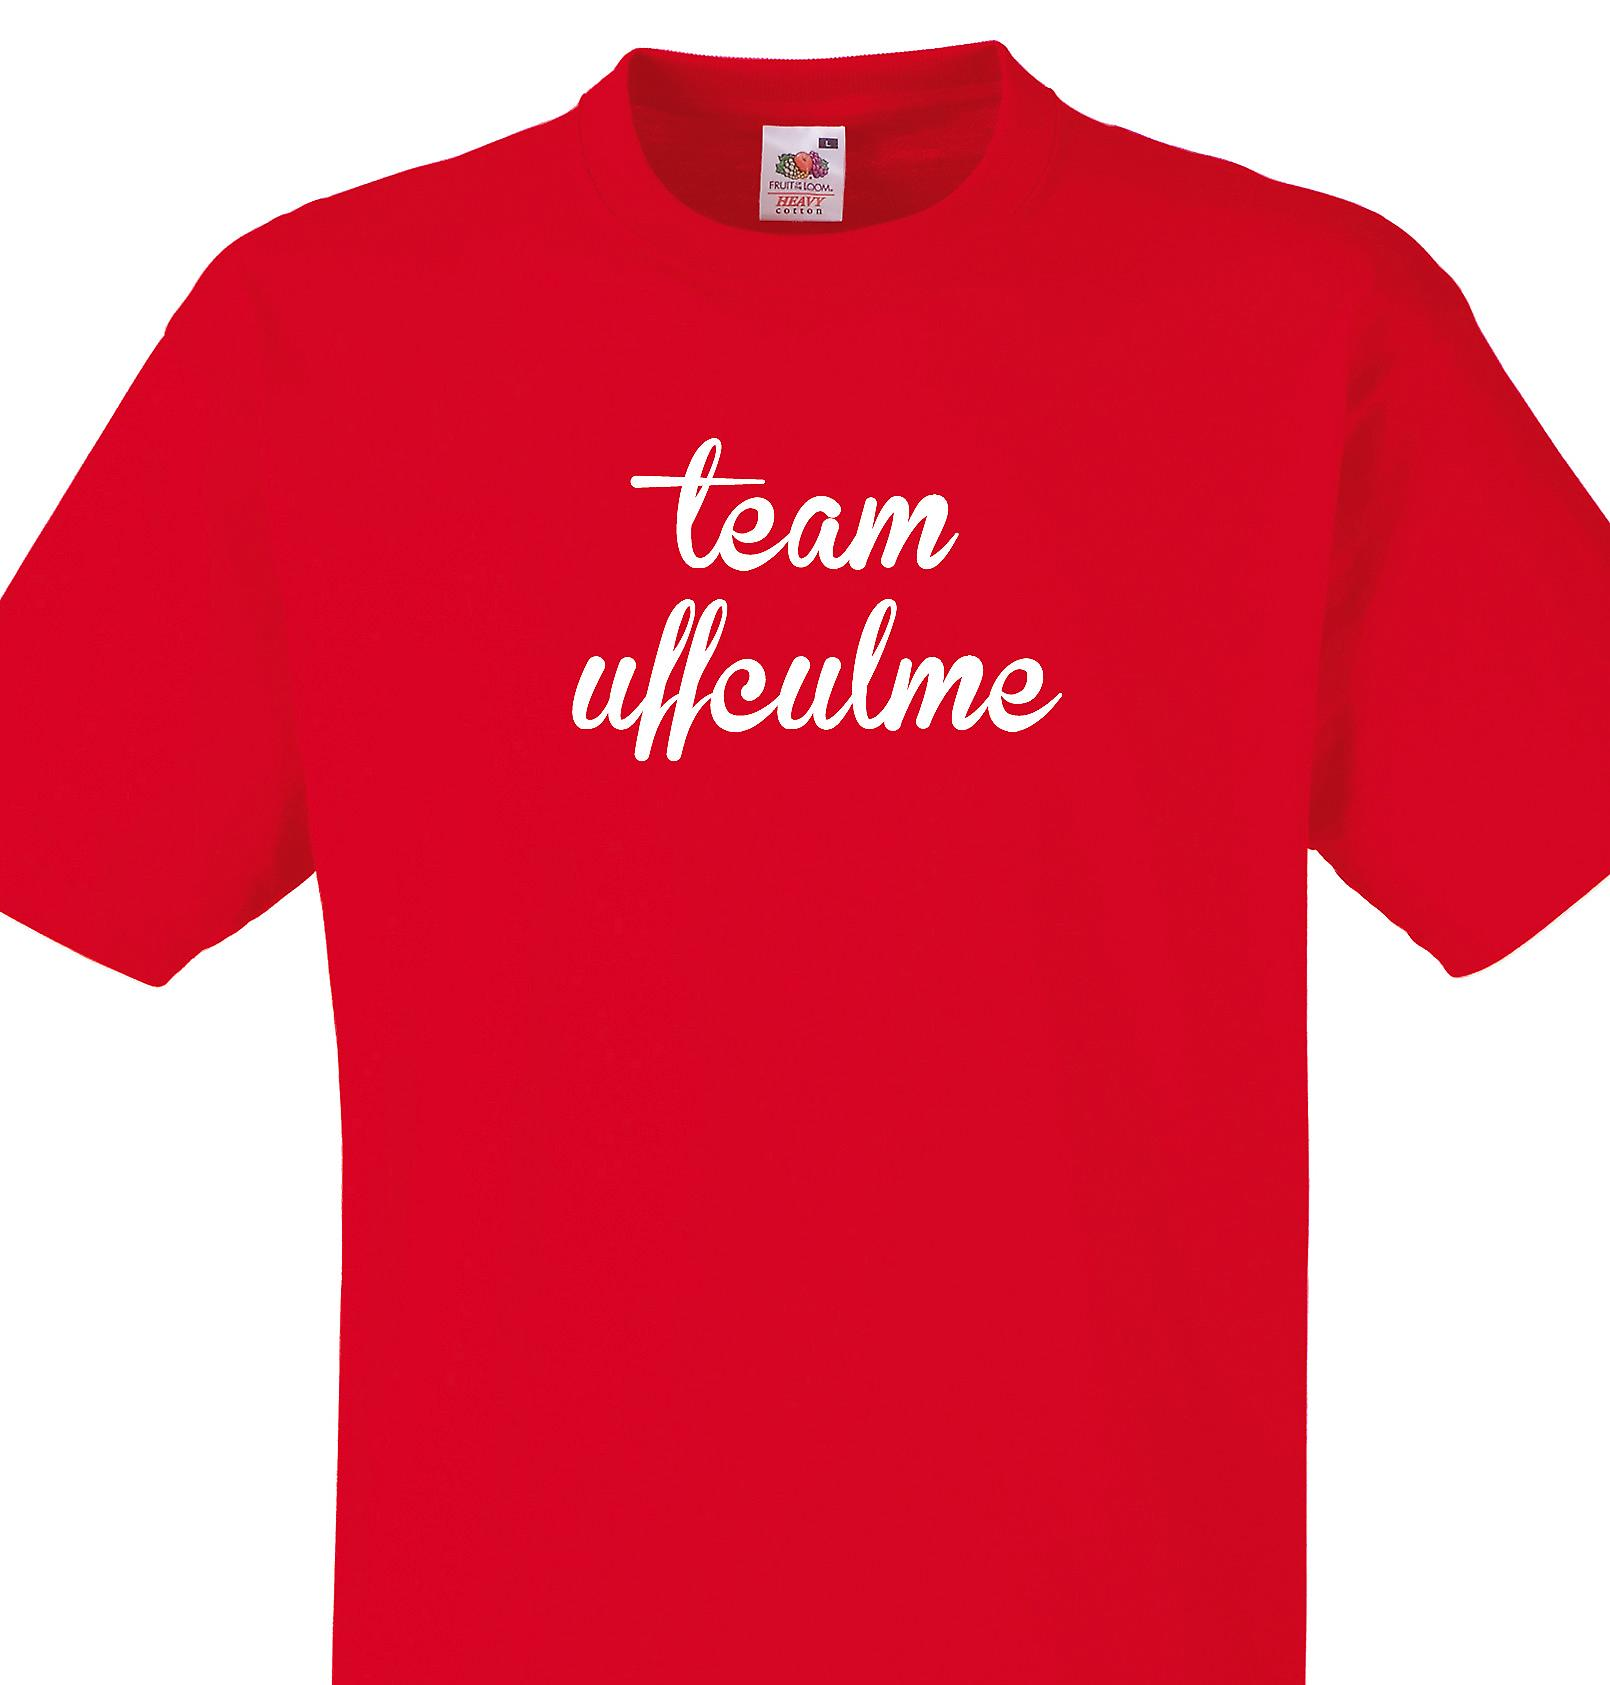 Team Uffculme Red T shirt